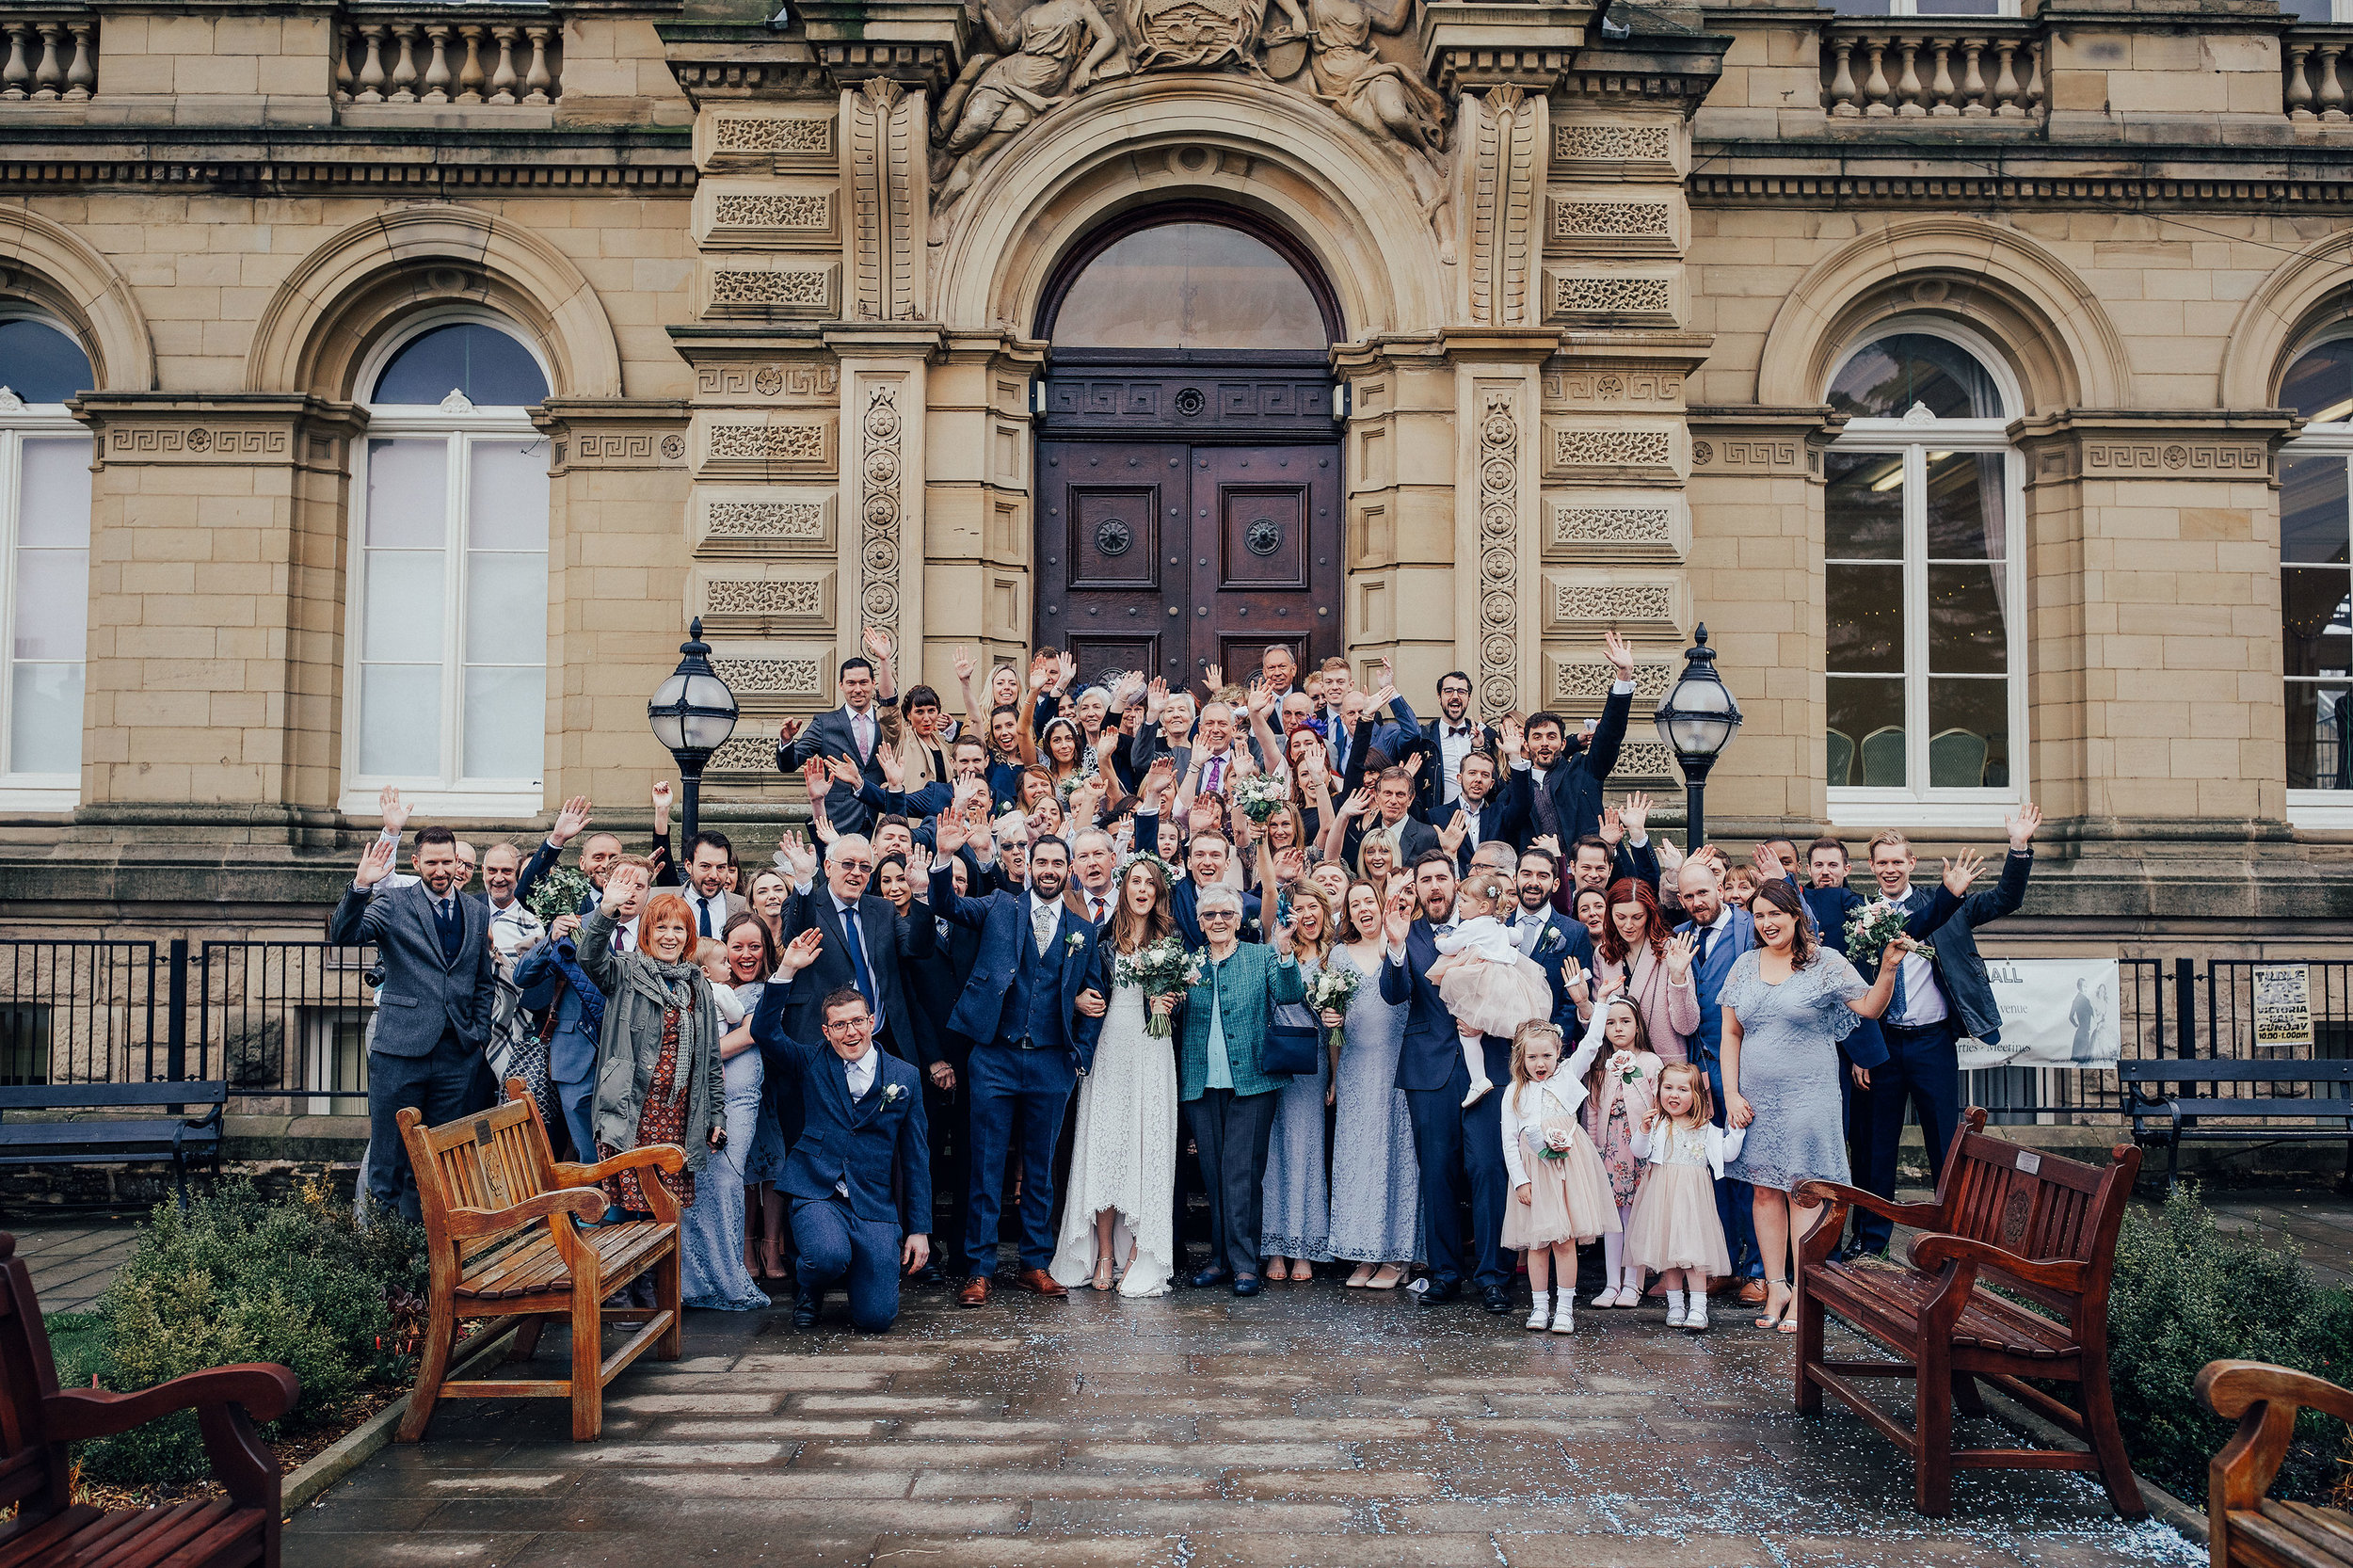 PJ_PHILLIPS_PHOTOGRAPHY_2018_SCOTLAND_WEDDING_PHOTOOGRAPHER_368.jpg